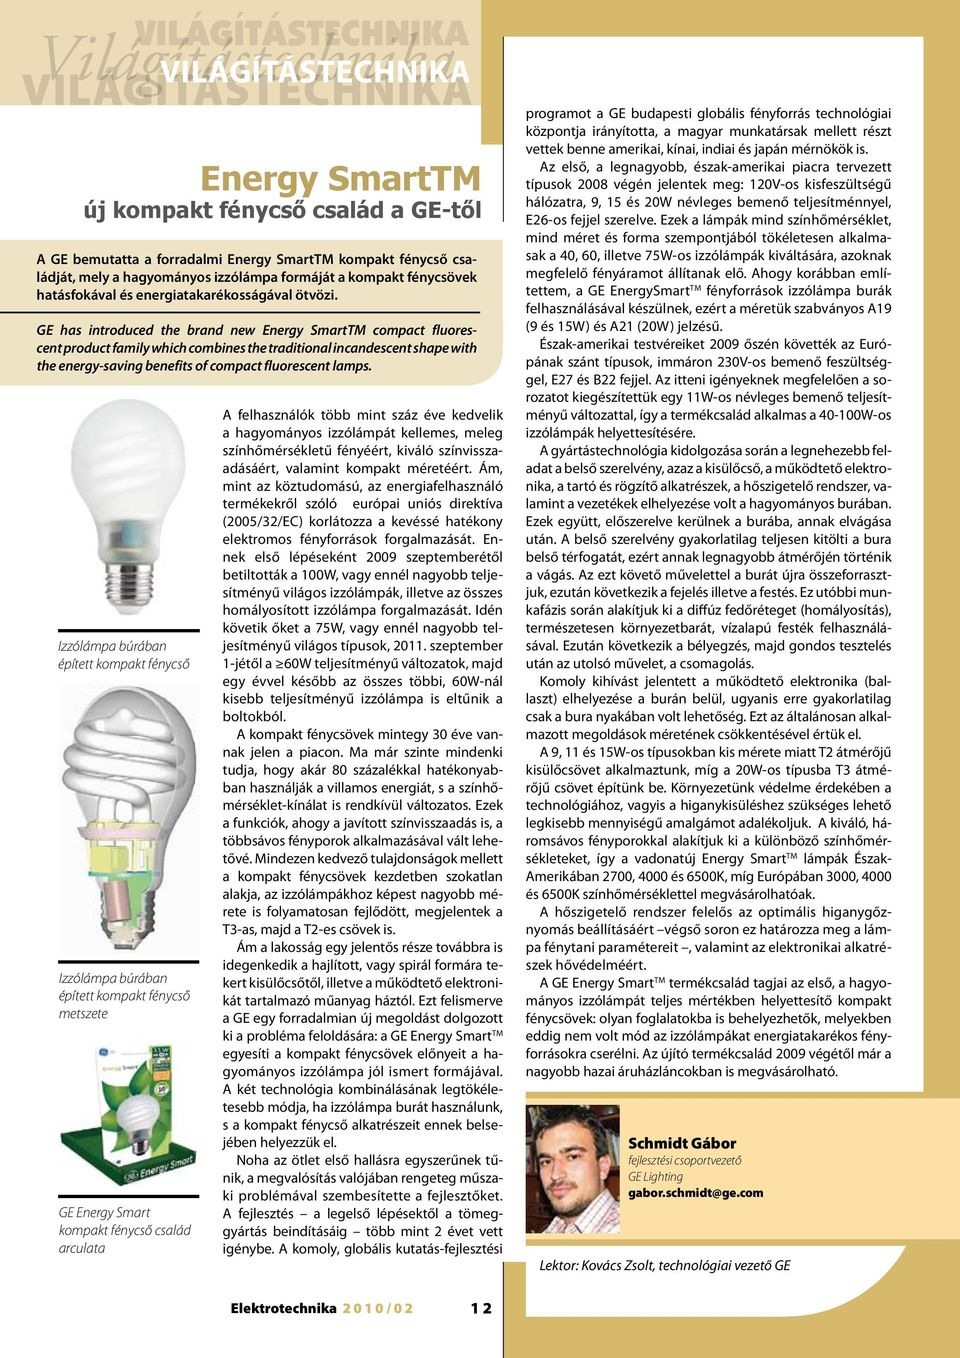 GE has introduced the brand new Energy SmartTM compact fluorescent product family which combines the traditional incandescent shape with the energy-saving benefits of compact fluorescent lamps.